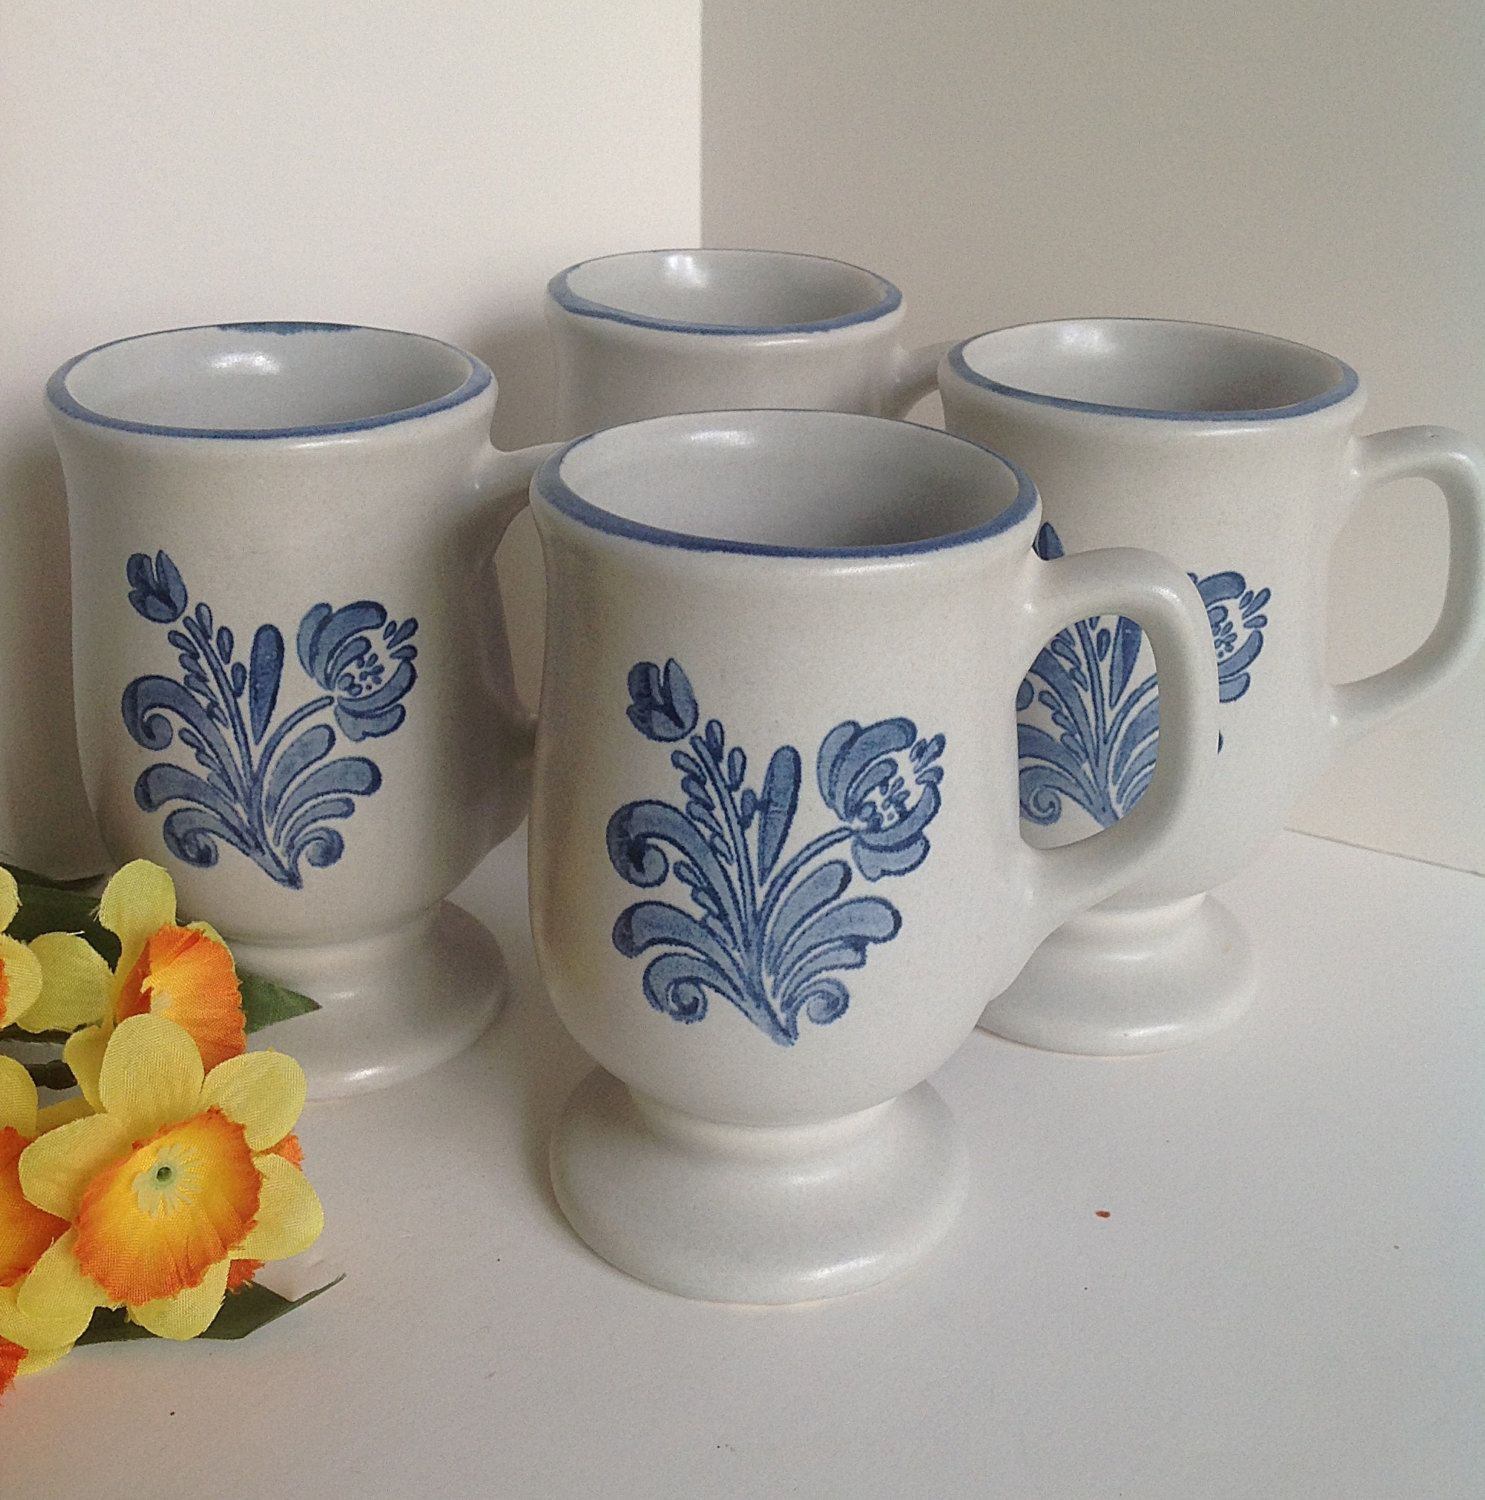 lovely Pfaltzgraff Vintage Floral Part - 3: 4 PFALTZGRAFF YORKTOWNE Footed Mugs with Blue Trim Gray with Blue Floral  Stoneware Cups by AnniesOldStuff on Etsy